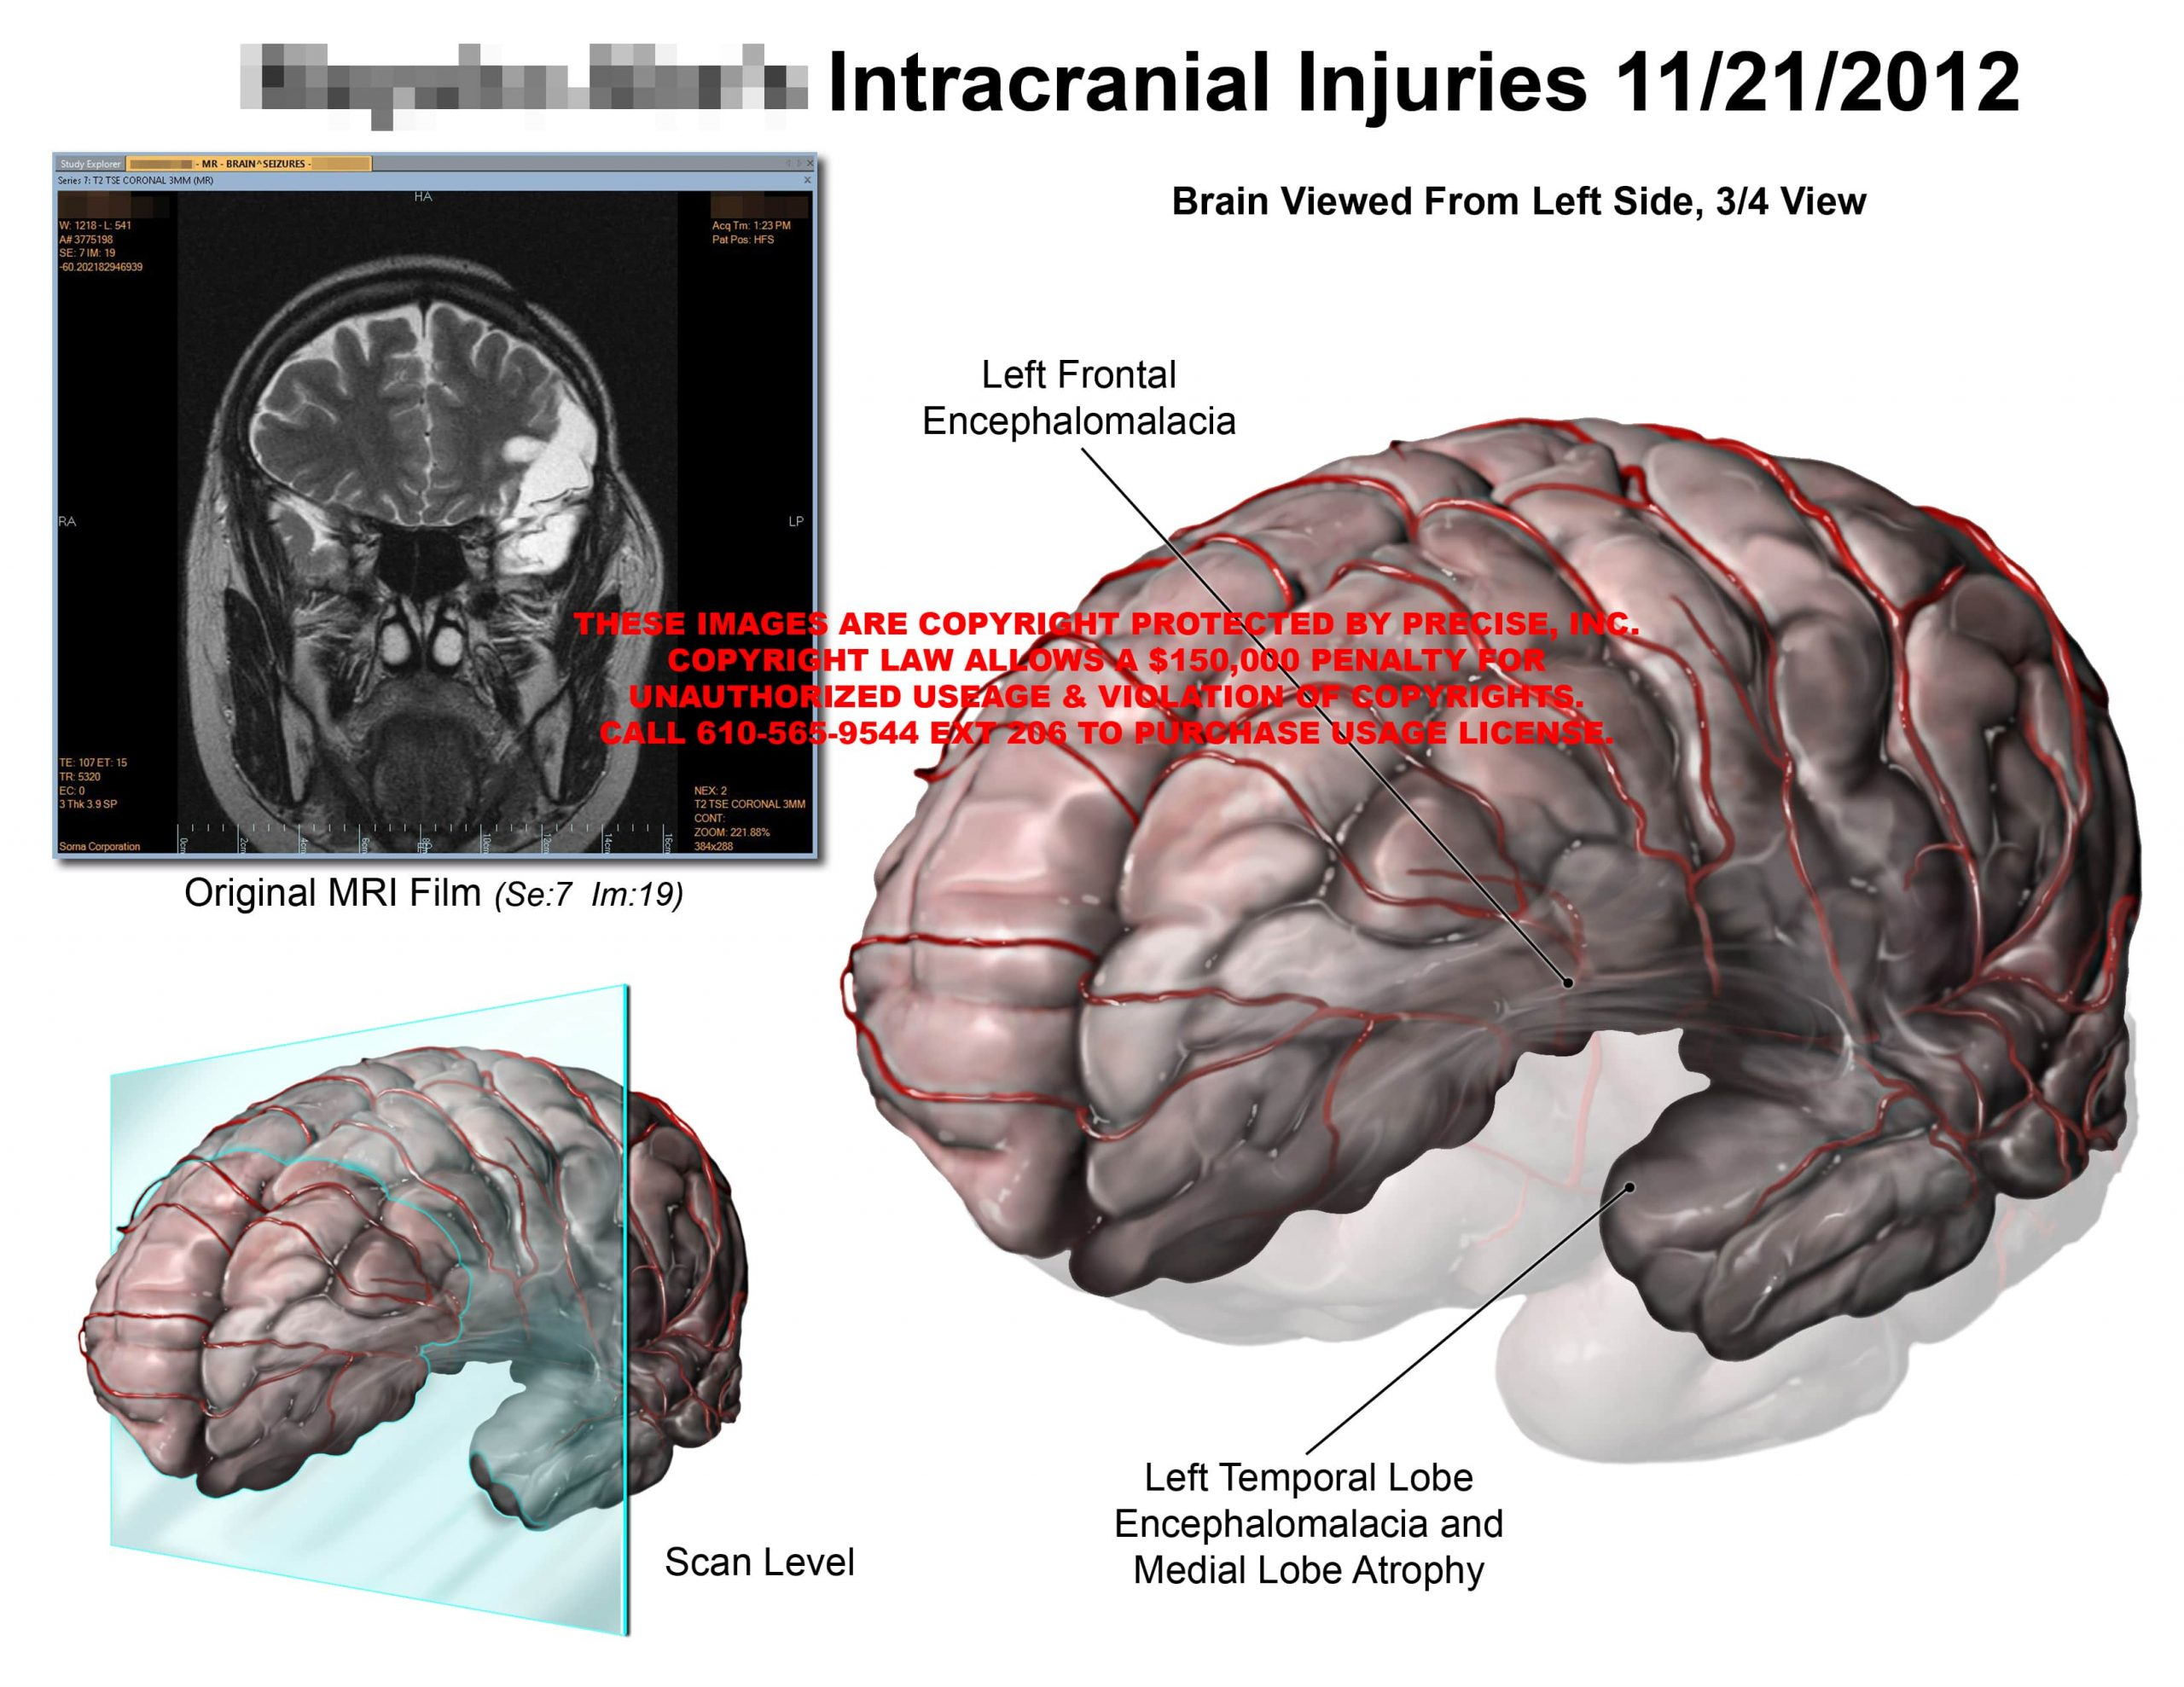 Intracranial Injuries